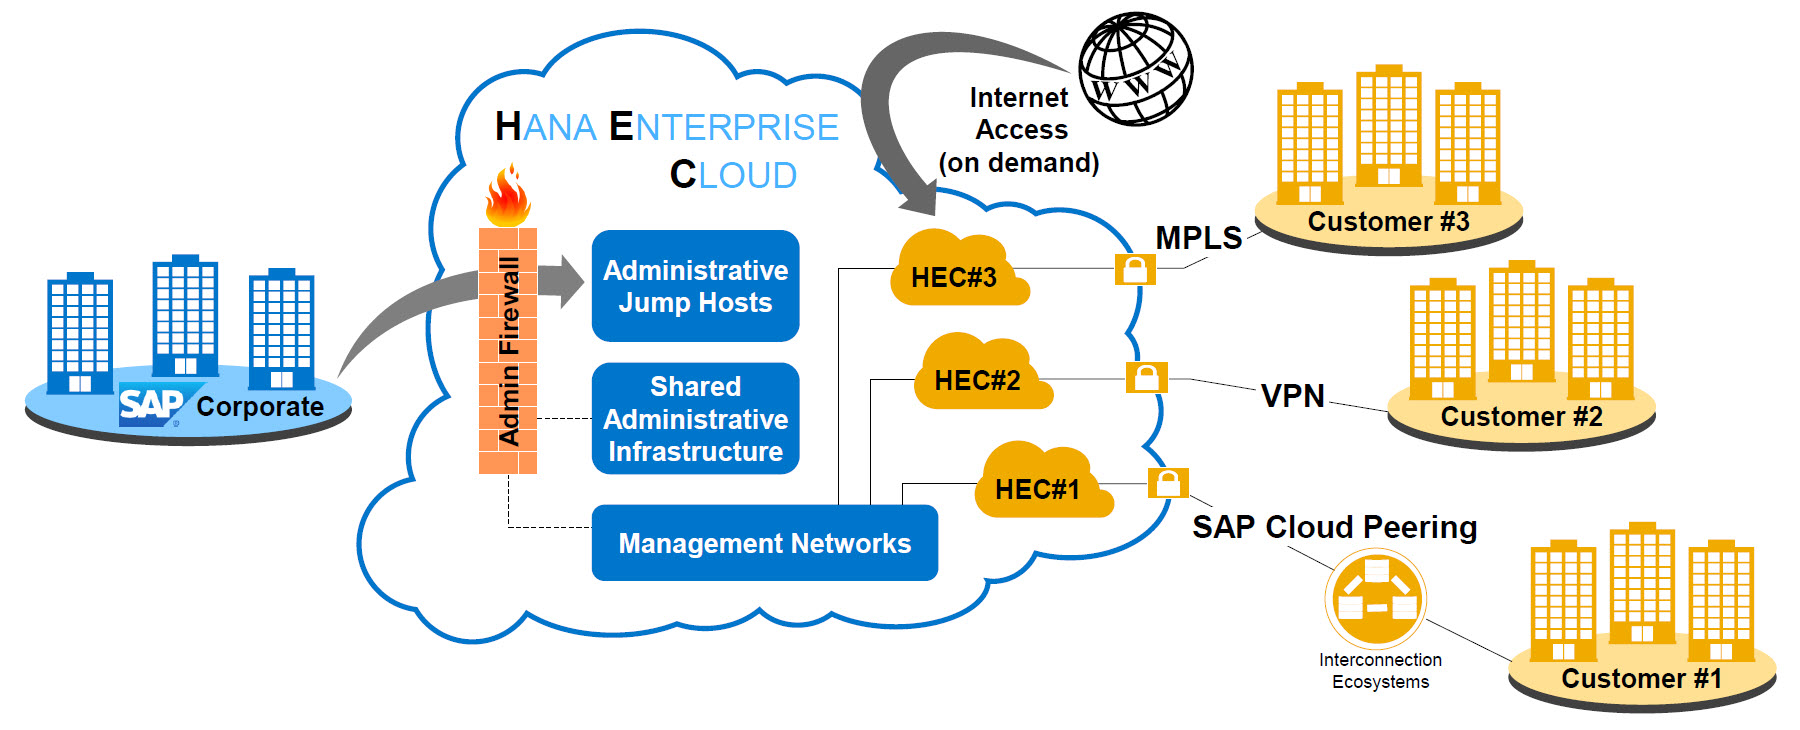 connecting to sap hana enterprise cloud sap blogsin addition to the integration with a corporate network, sap hana enterprise cloud provides the capability to expose required applications or web services